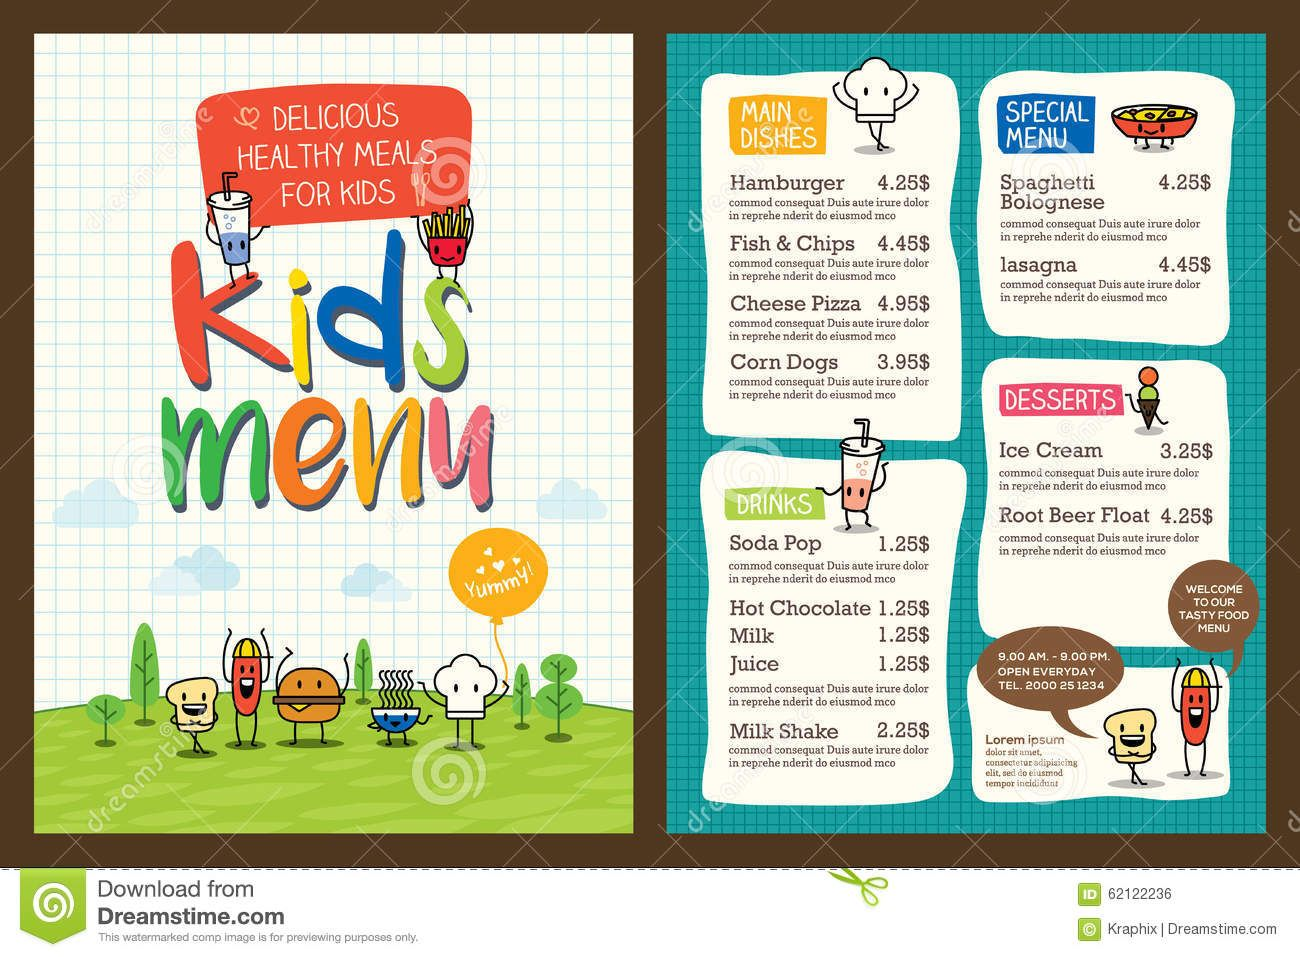 Cute Colorful Kids Meal Menu Template From Over 64 Million High Quality Stock Photos Images Vectors Sign Up For Free Today Image 62122236